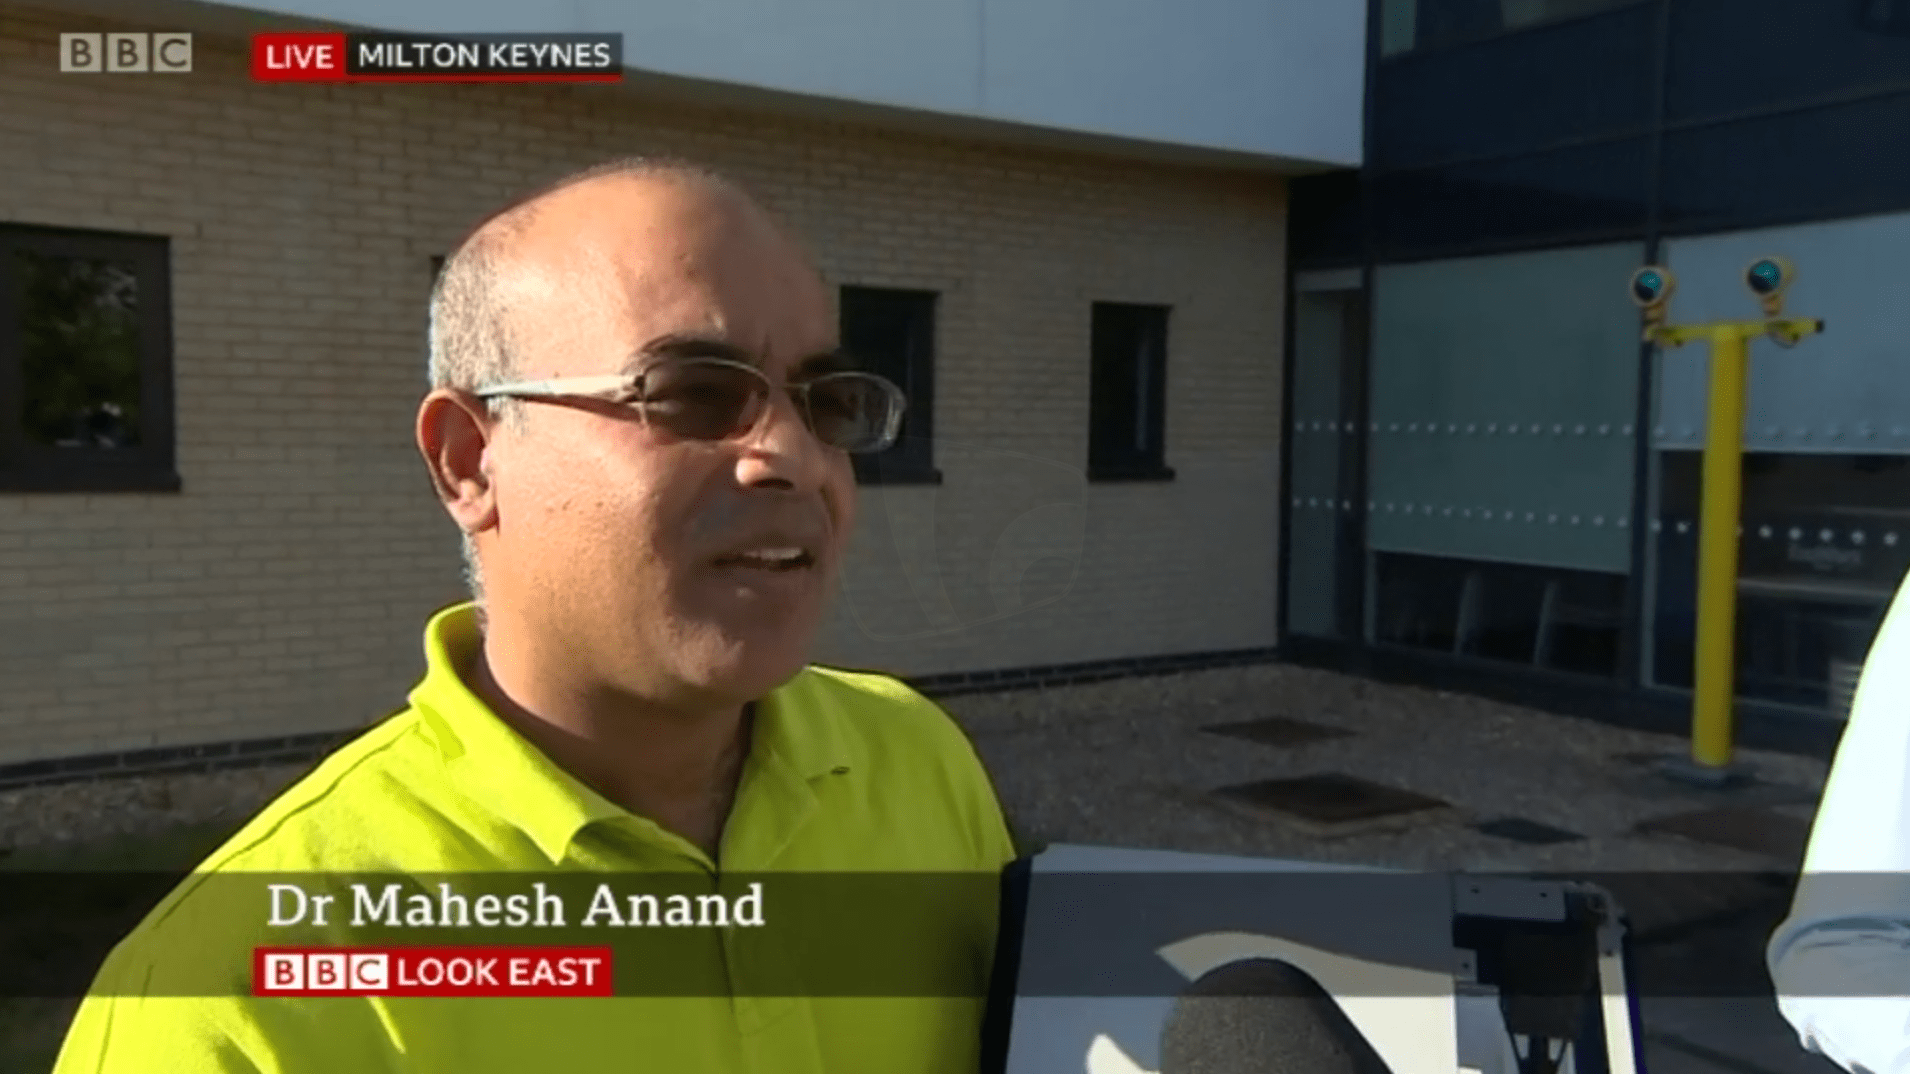 PICTURED: BBC Look East (Cambridge) lower-third and live/location bug.